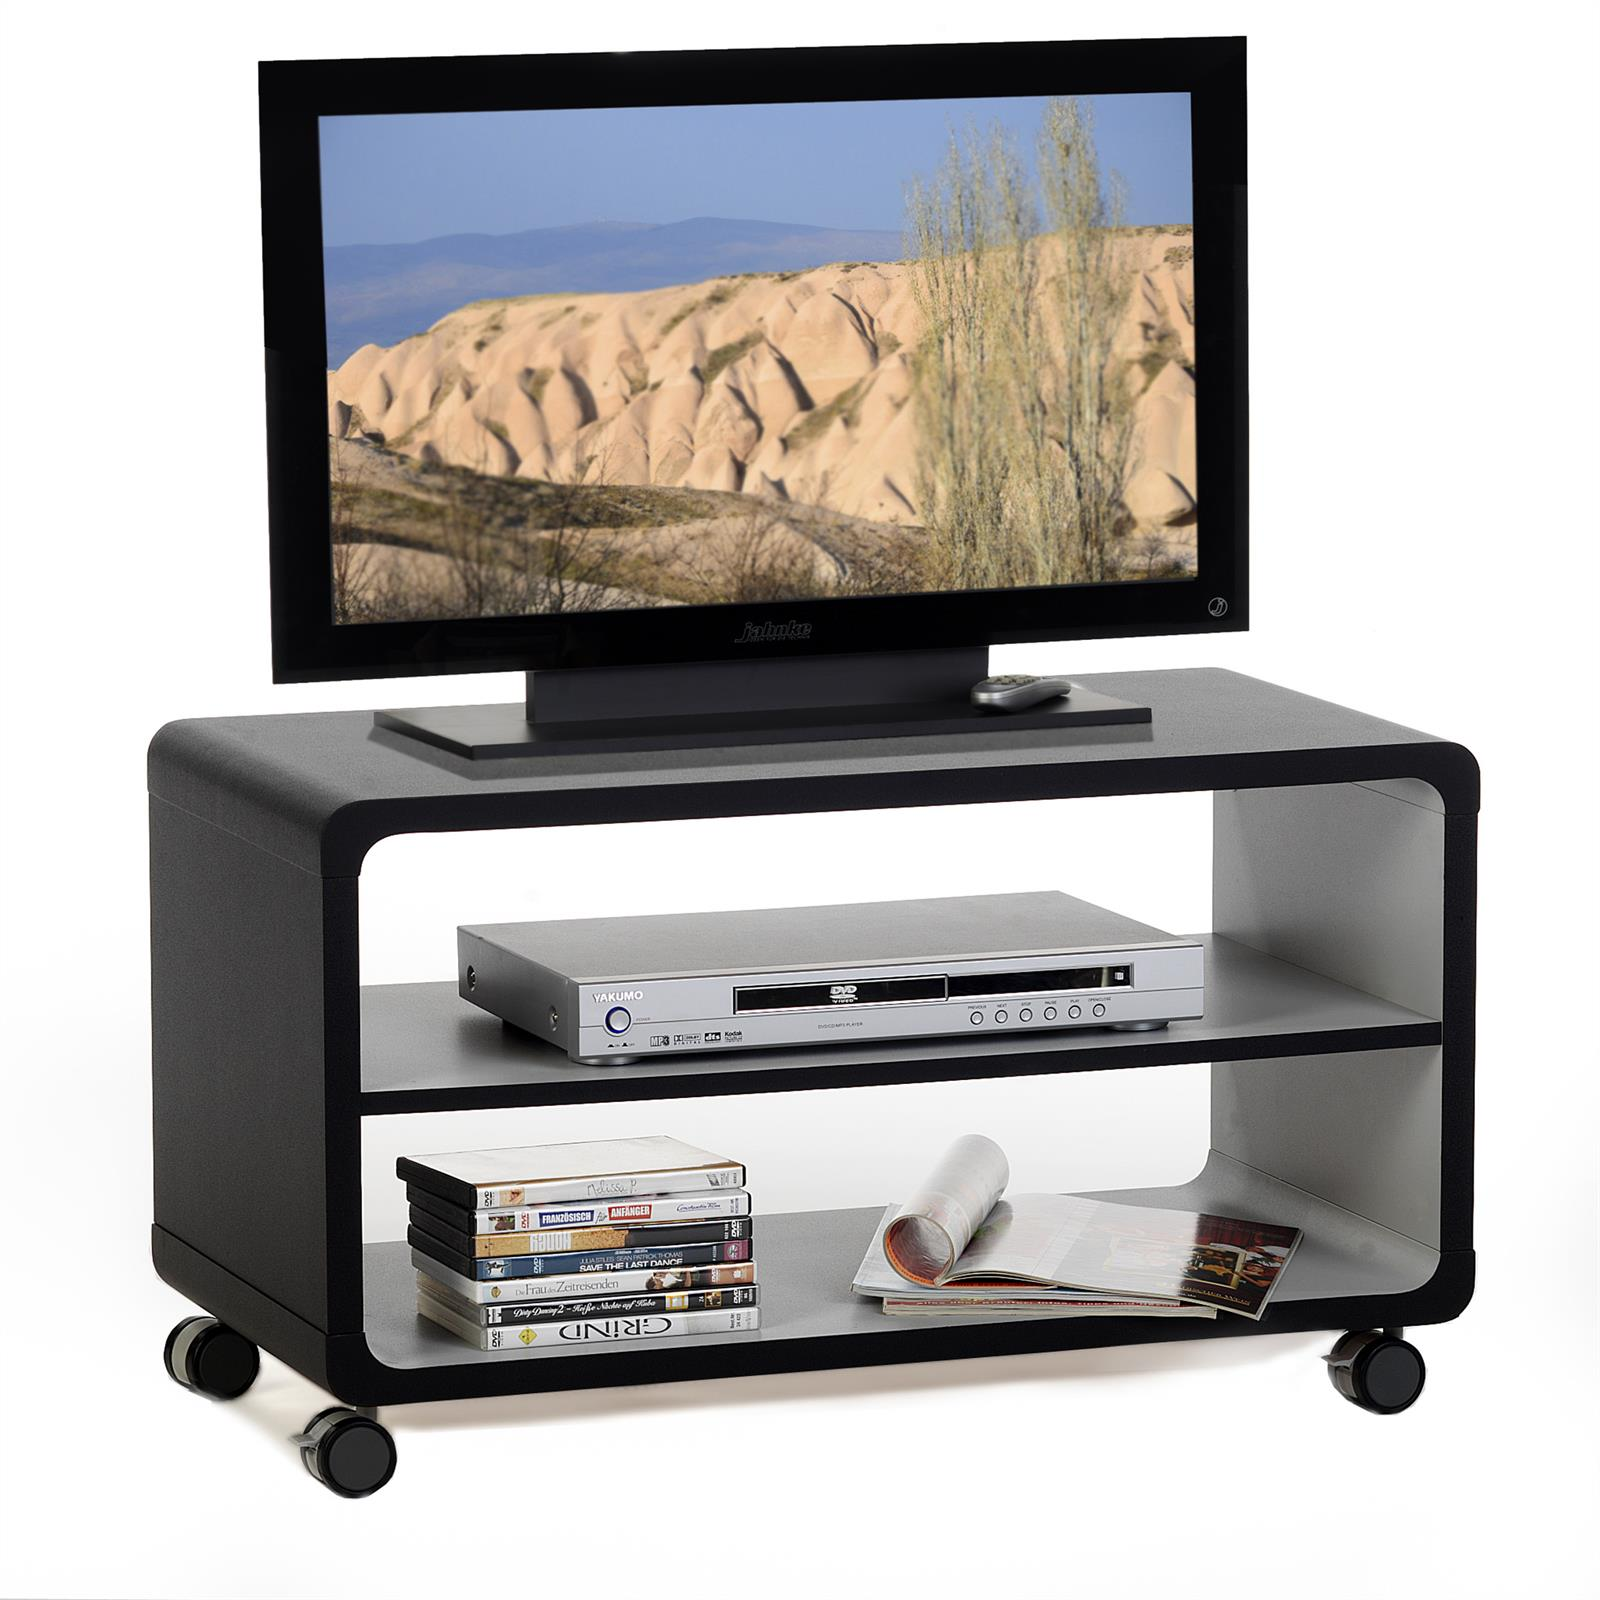 tv rack miami in schwarz grau mobilia24. Black Bedroom Furniture Sets. Home Design Ideas